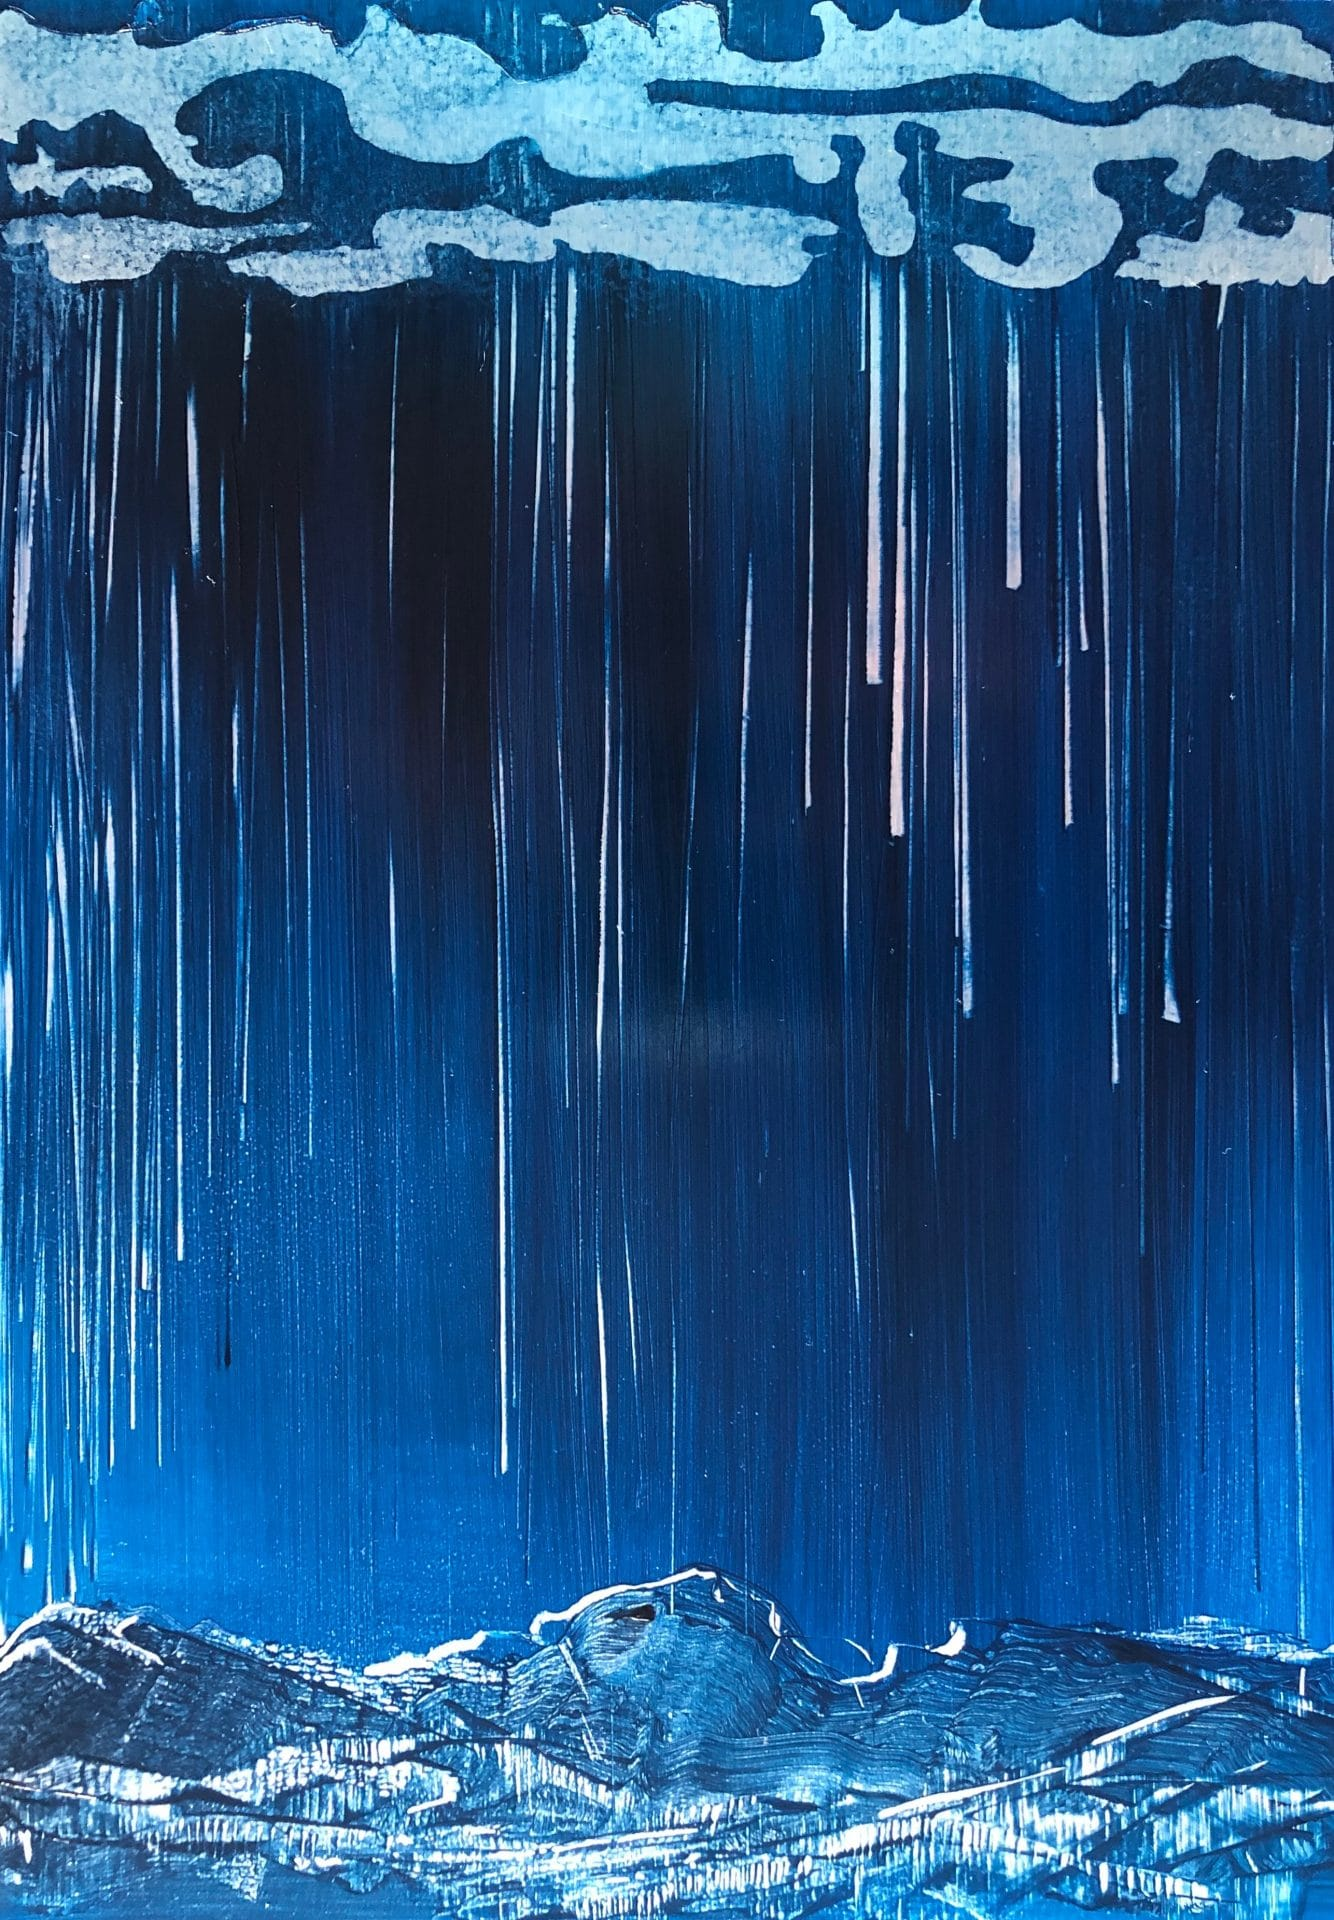 Original oil painting on metal by Cynthia McLoughlin of Miro style clouds raining silver streaks on the moonlit mountain below